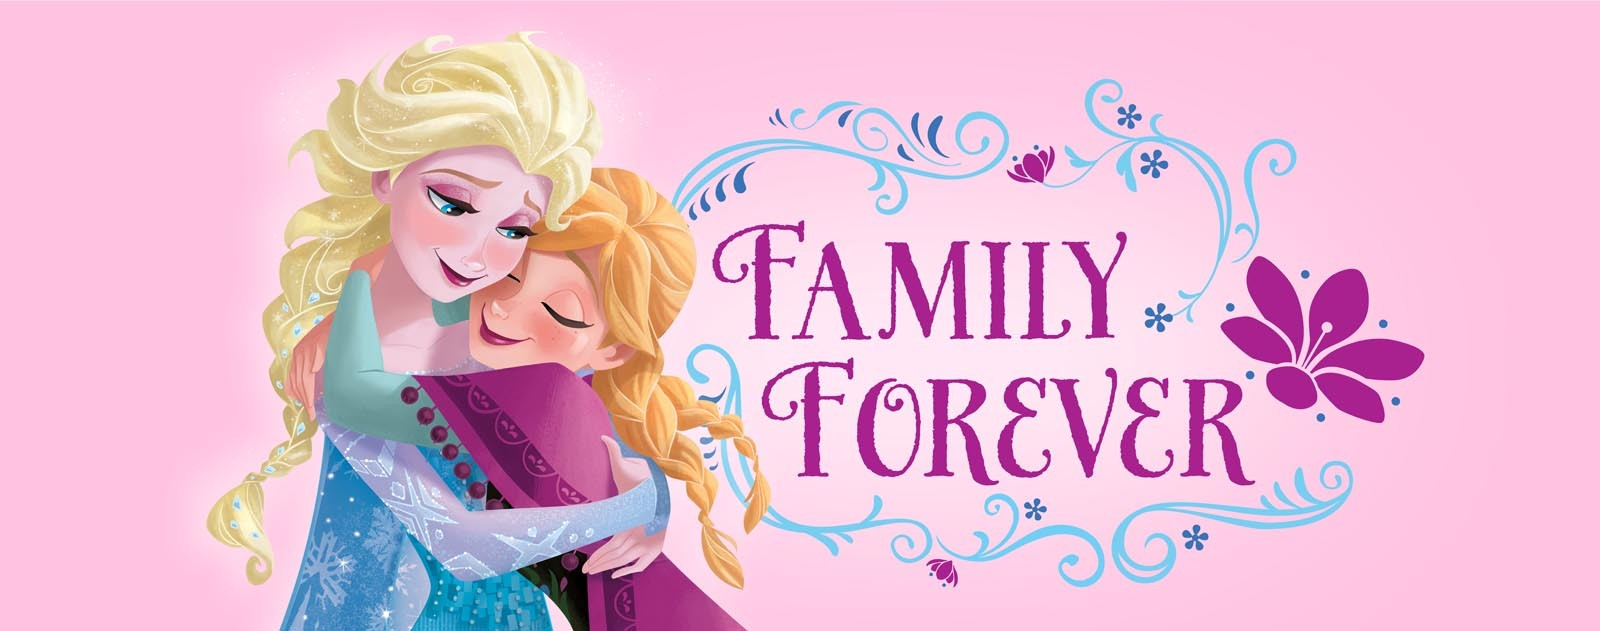 30337-00-dsn_disney_frozen_elsa_and_anna_my_sister_my_hero_1600px